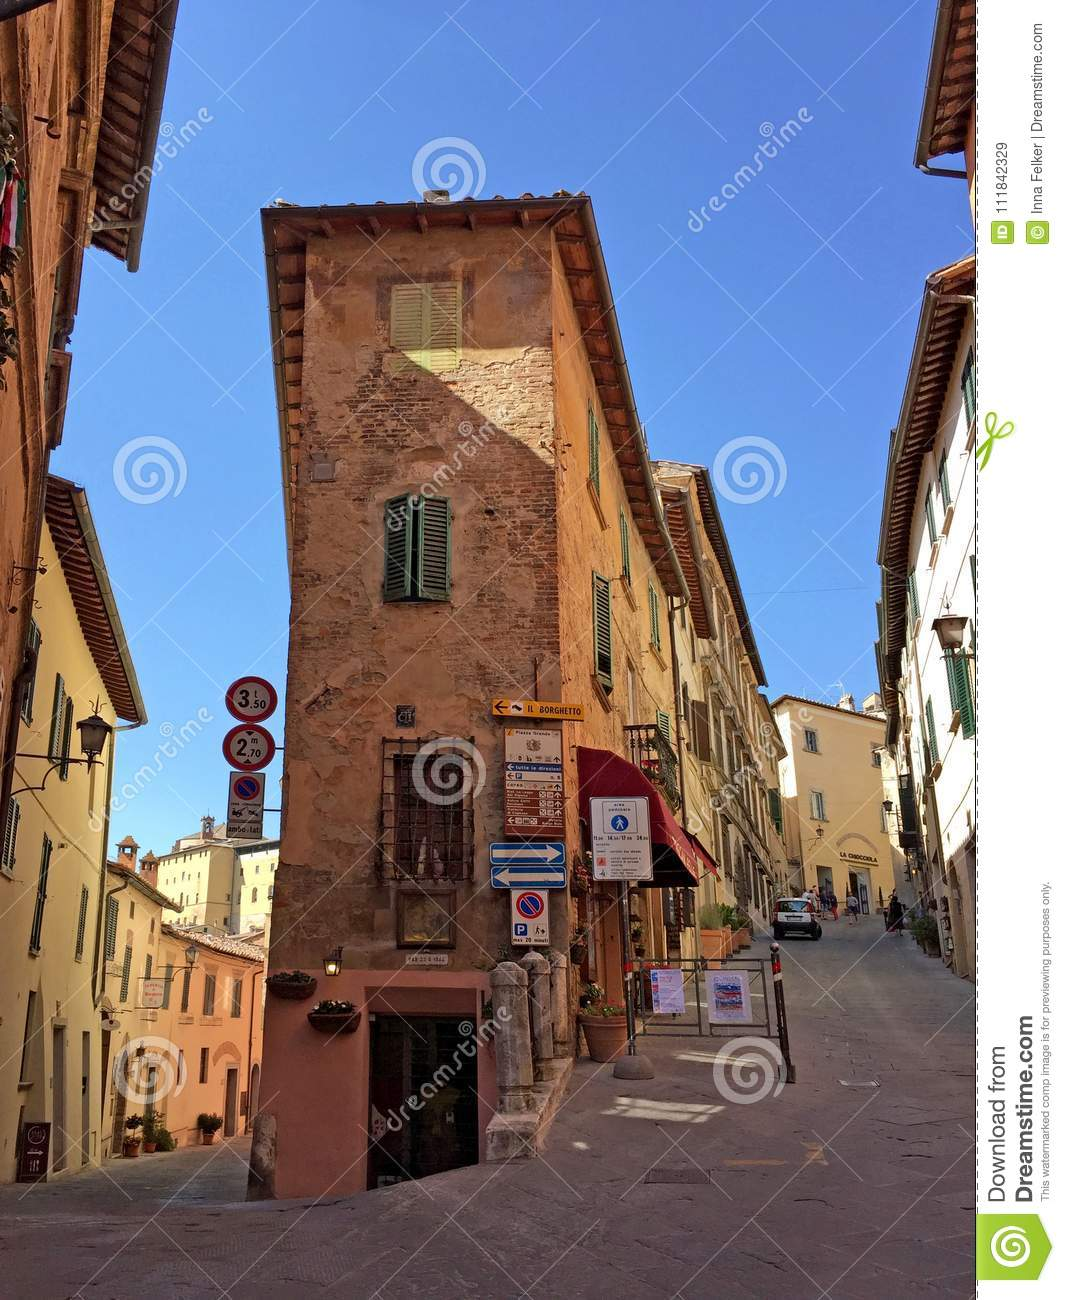 Medieval houses of Montepulciano, Tuscany, Italy